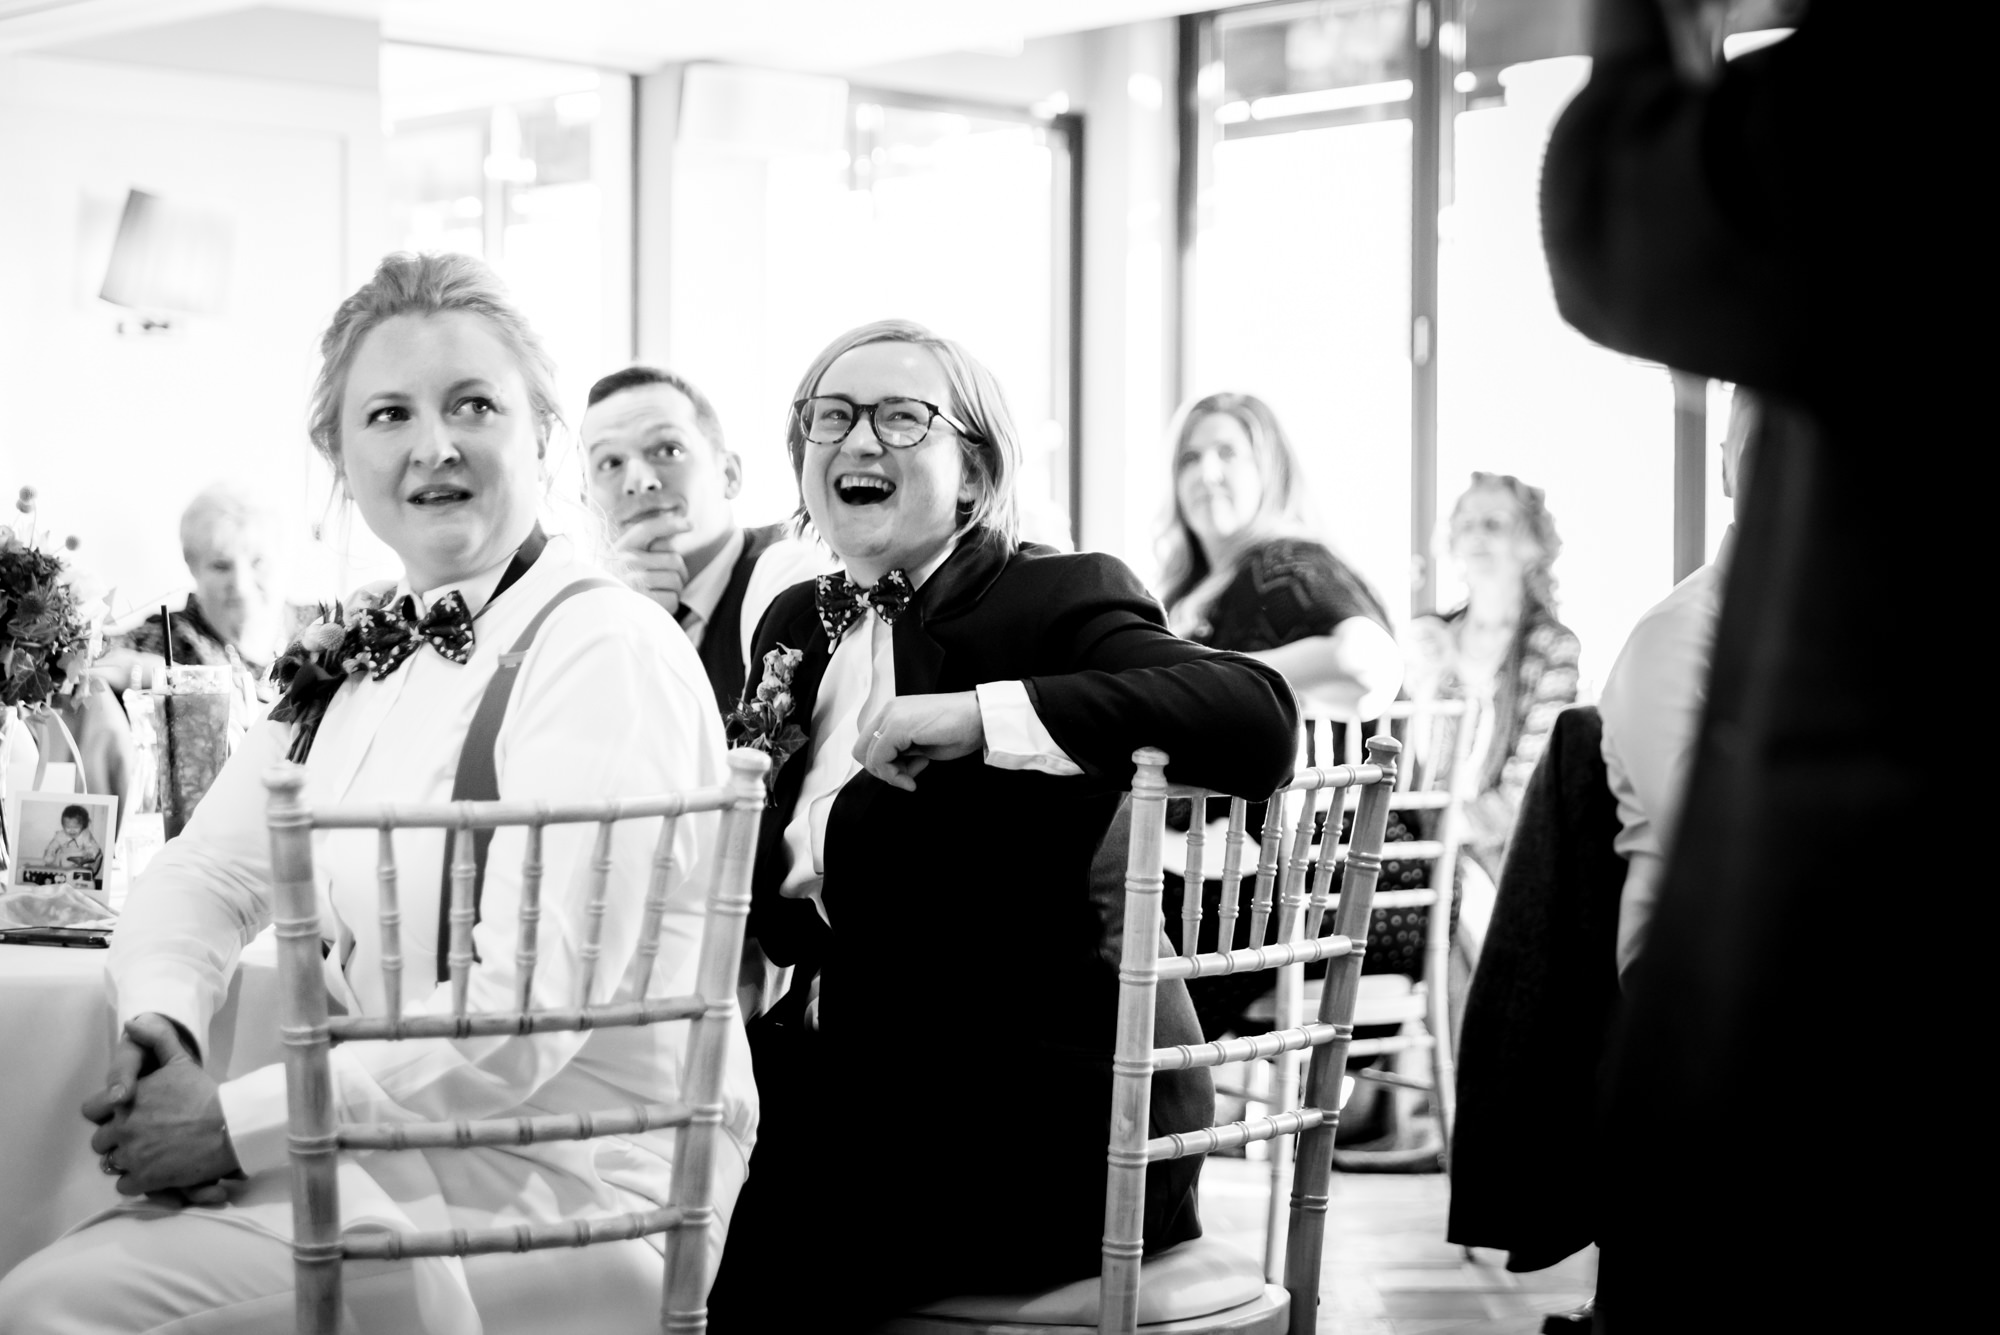 One bride is looking horrified while the other one is laughing